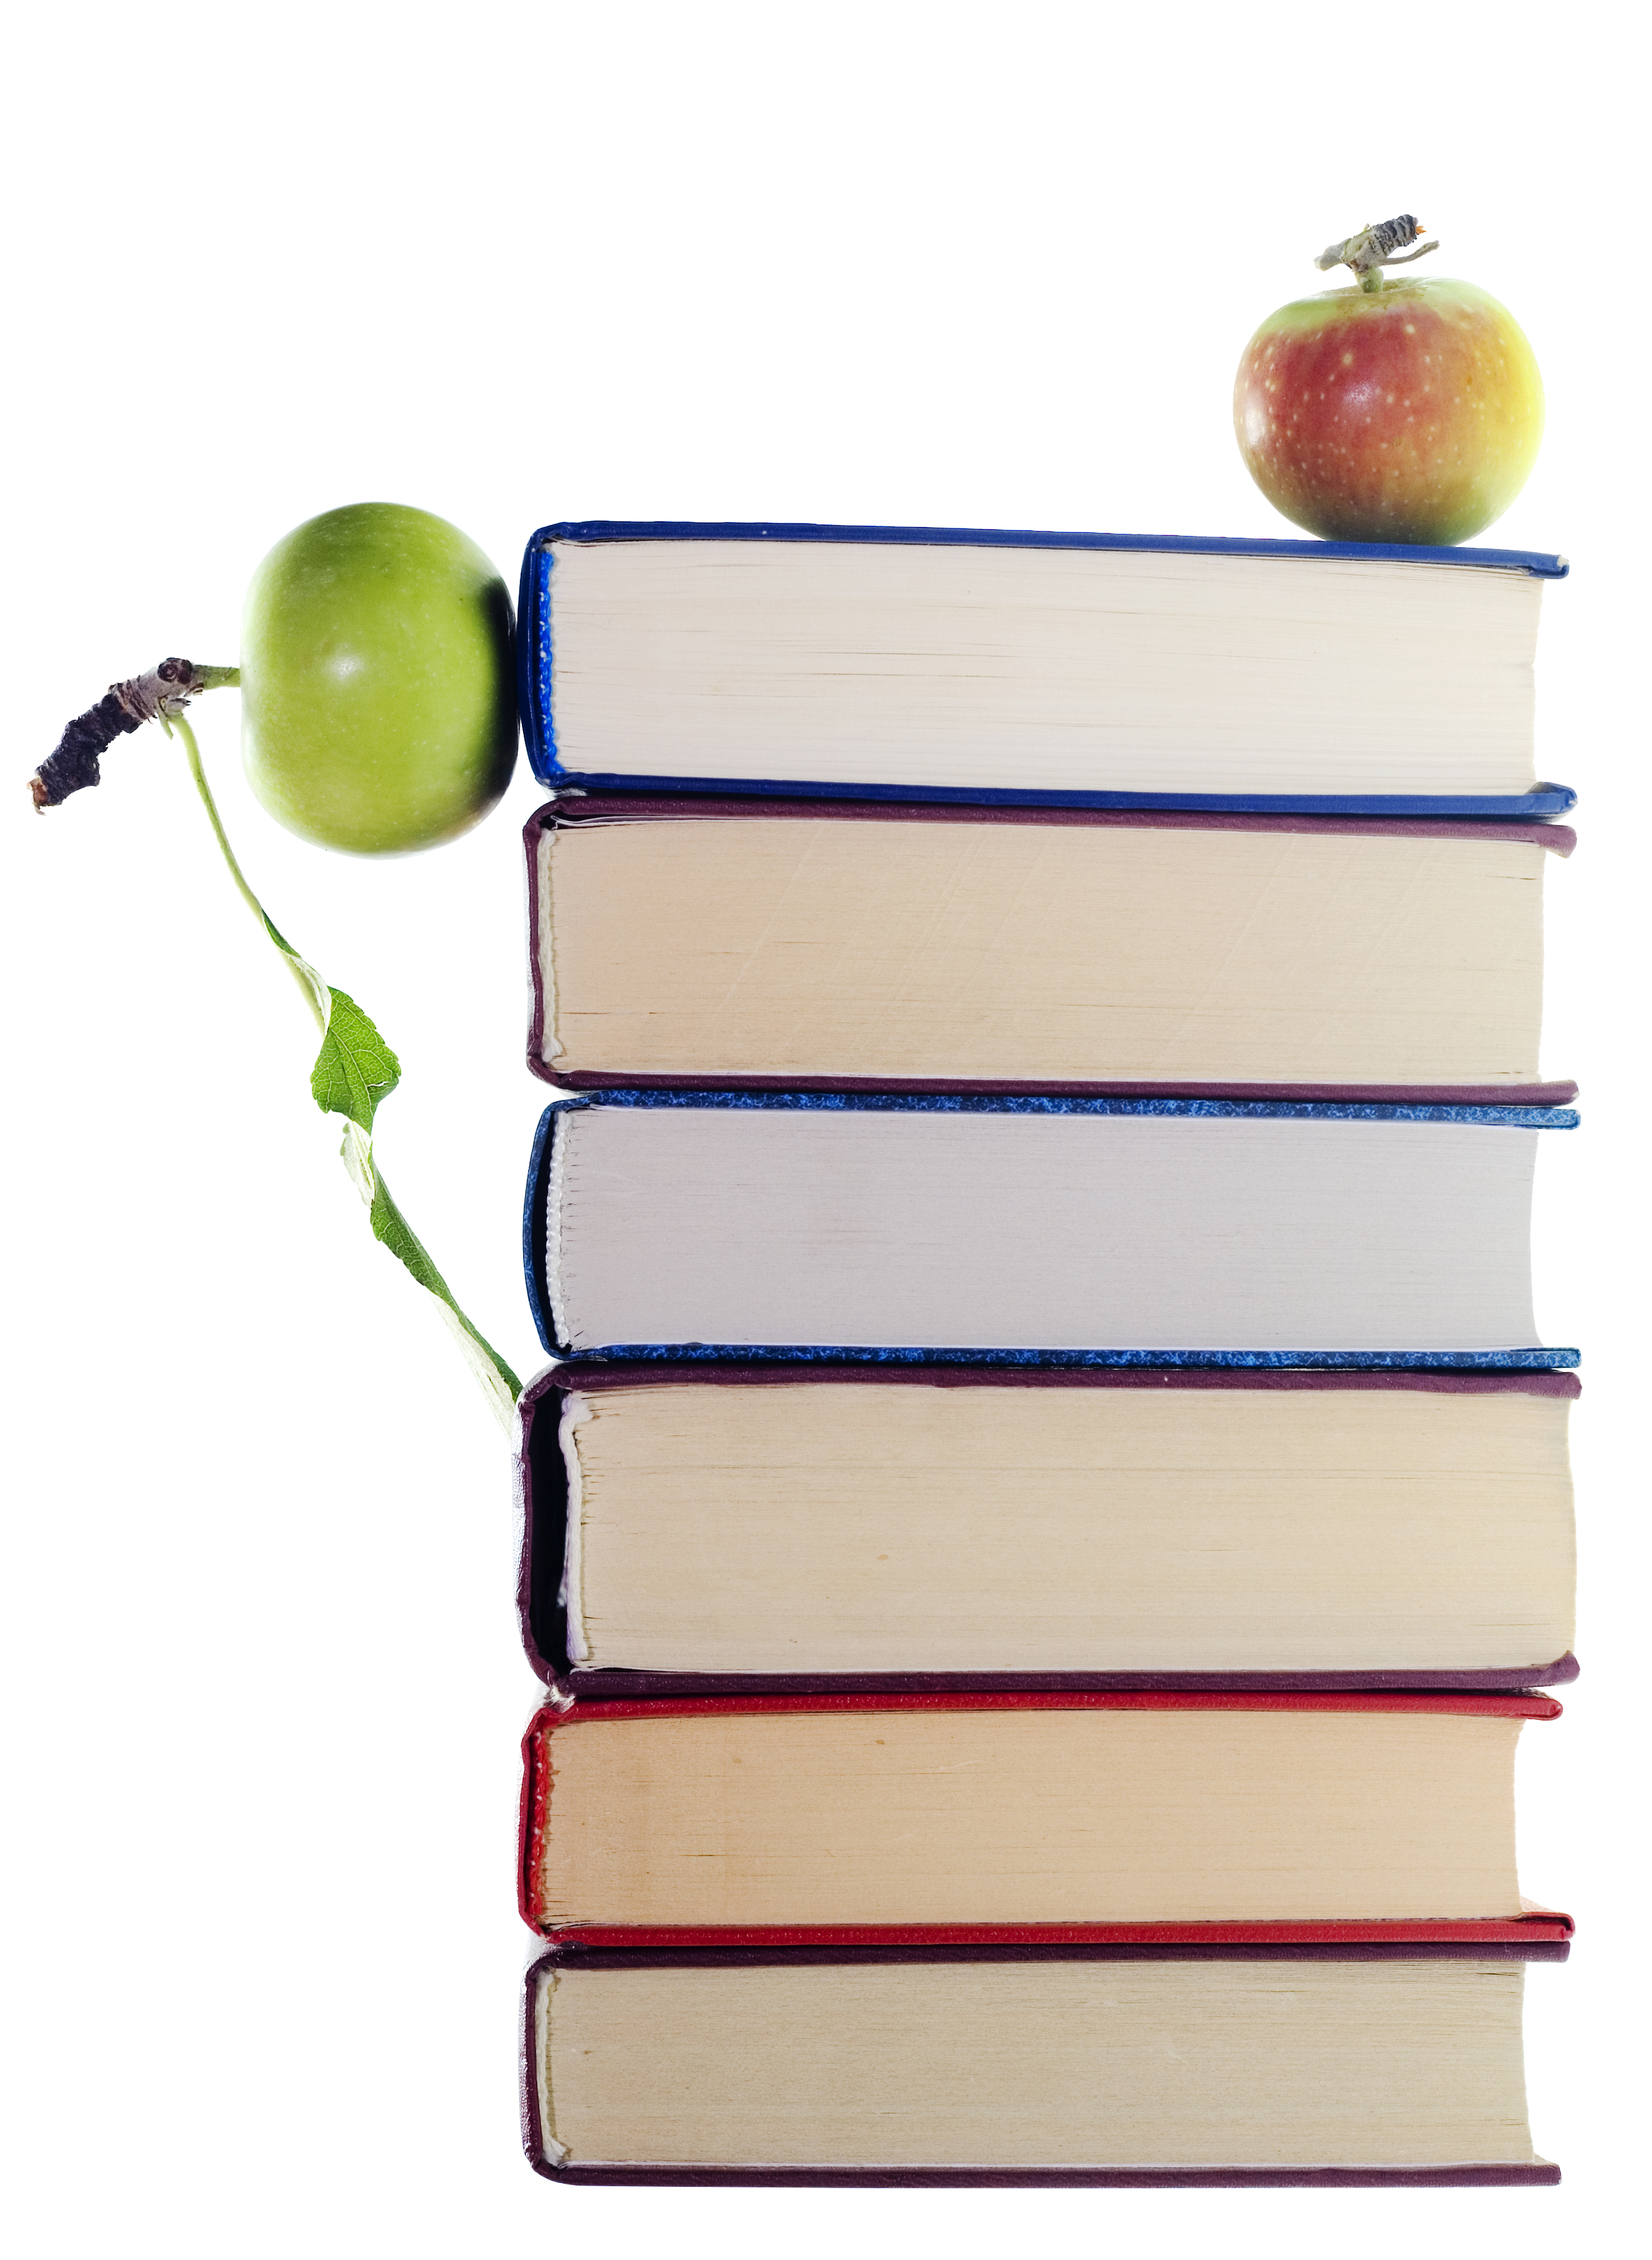 apples on stack of books, Reading, Red, School, Science, HQ Photo